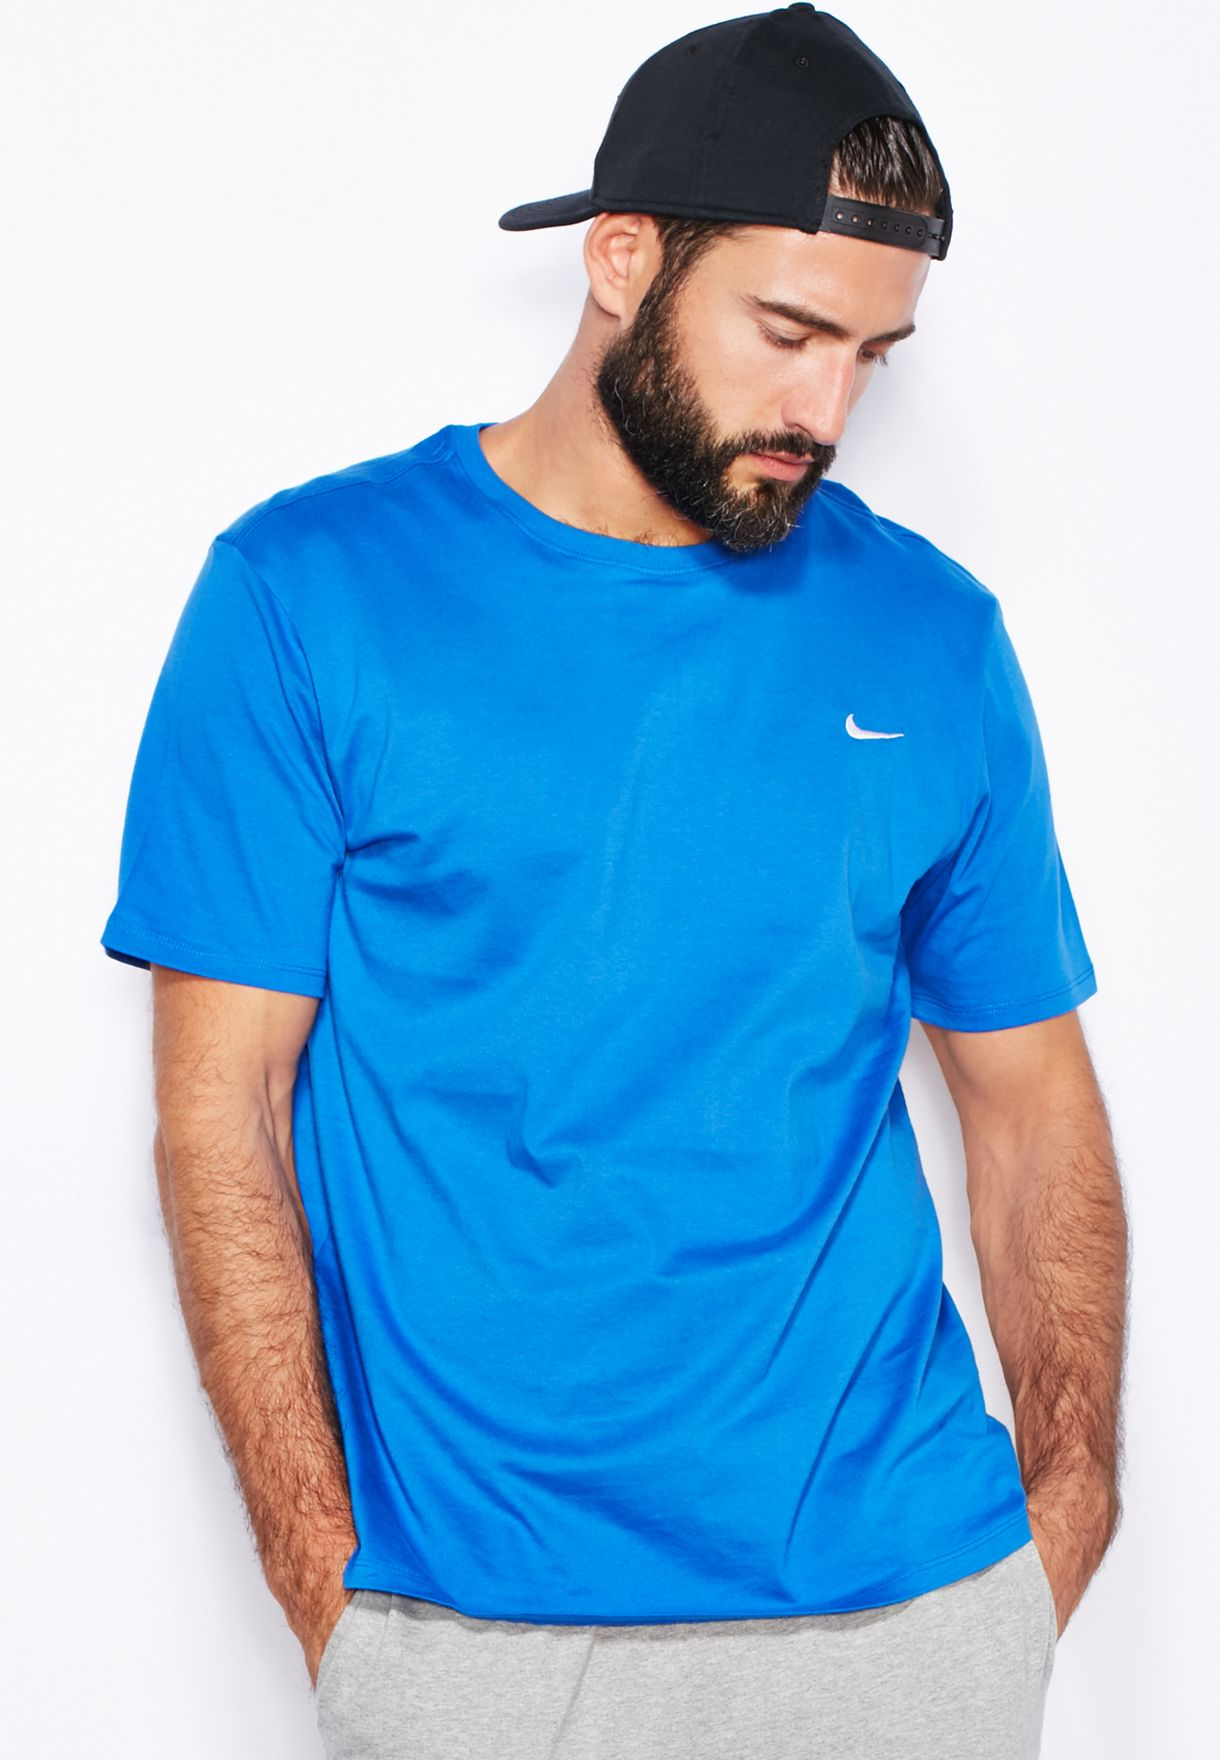 c6750c64 Shop Nike blue Embroidery Swoosh T-Shirt 707350-463 for Men in Oman ...